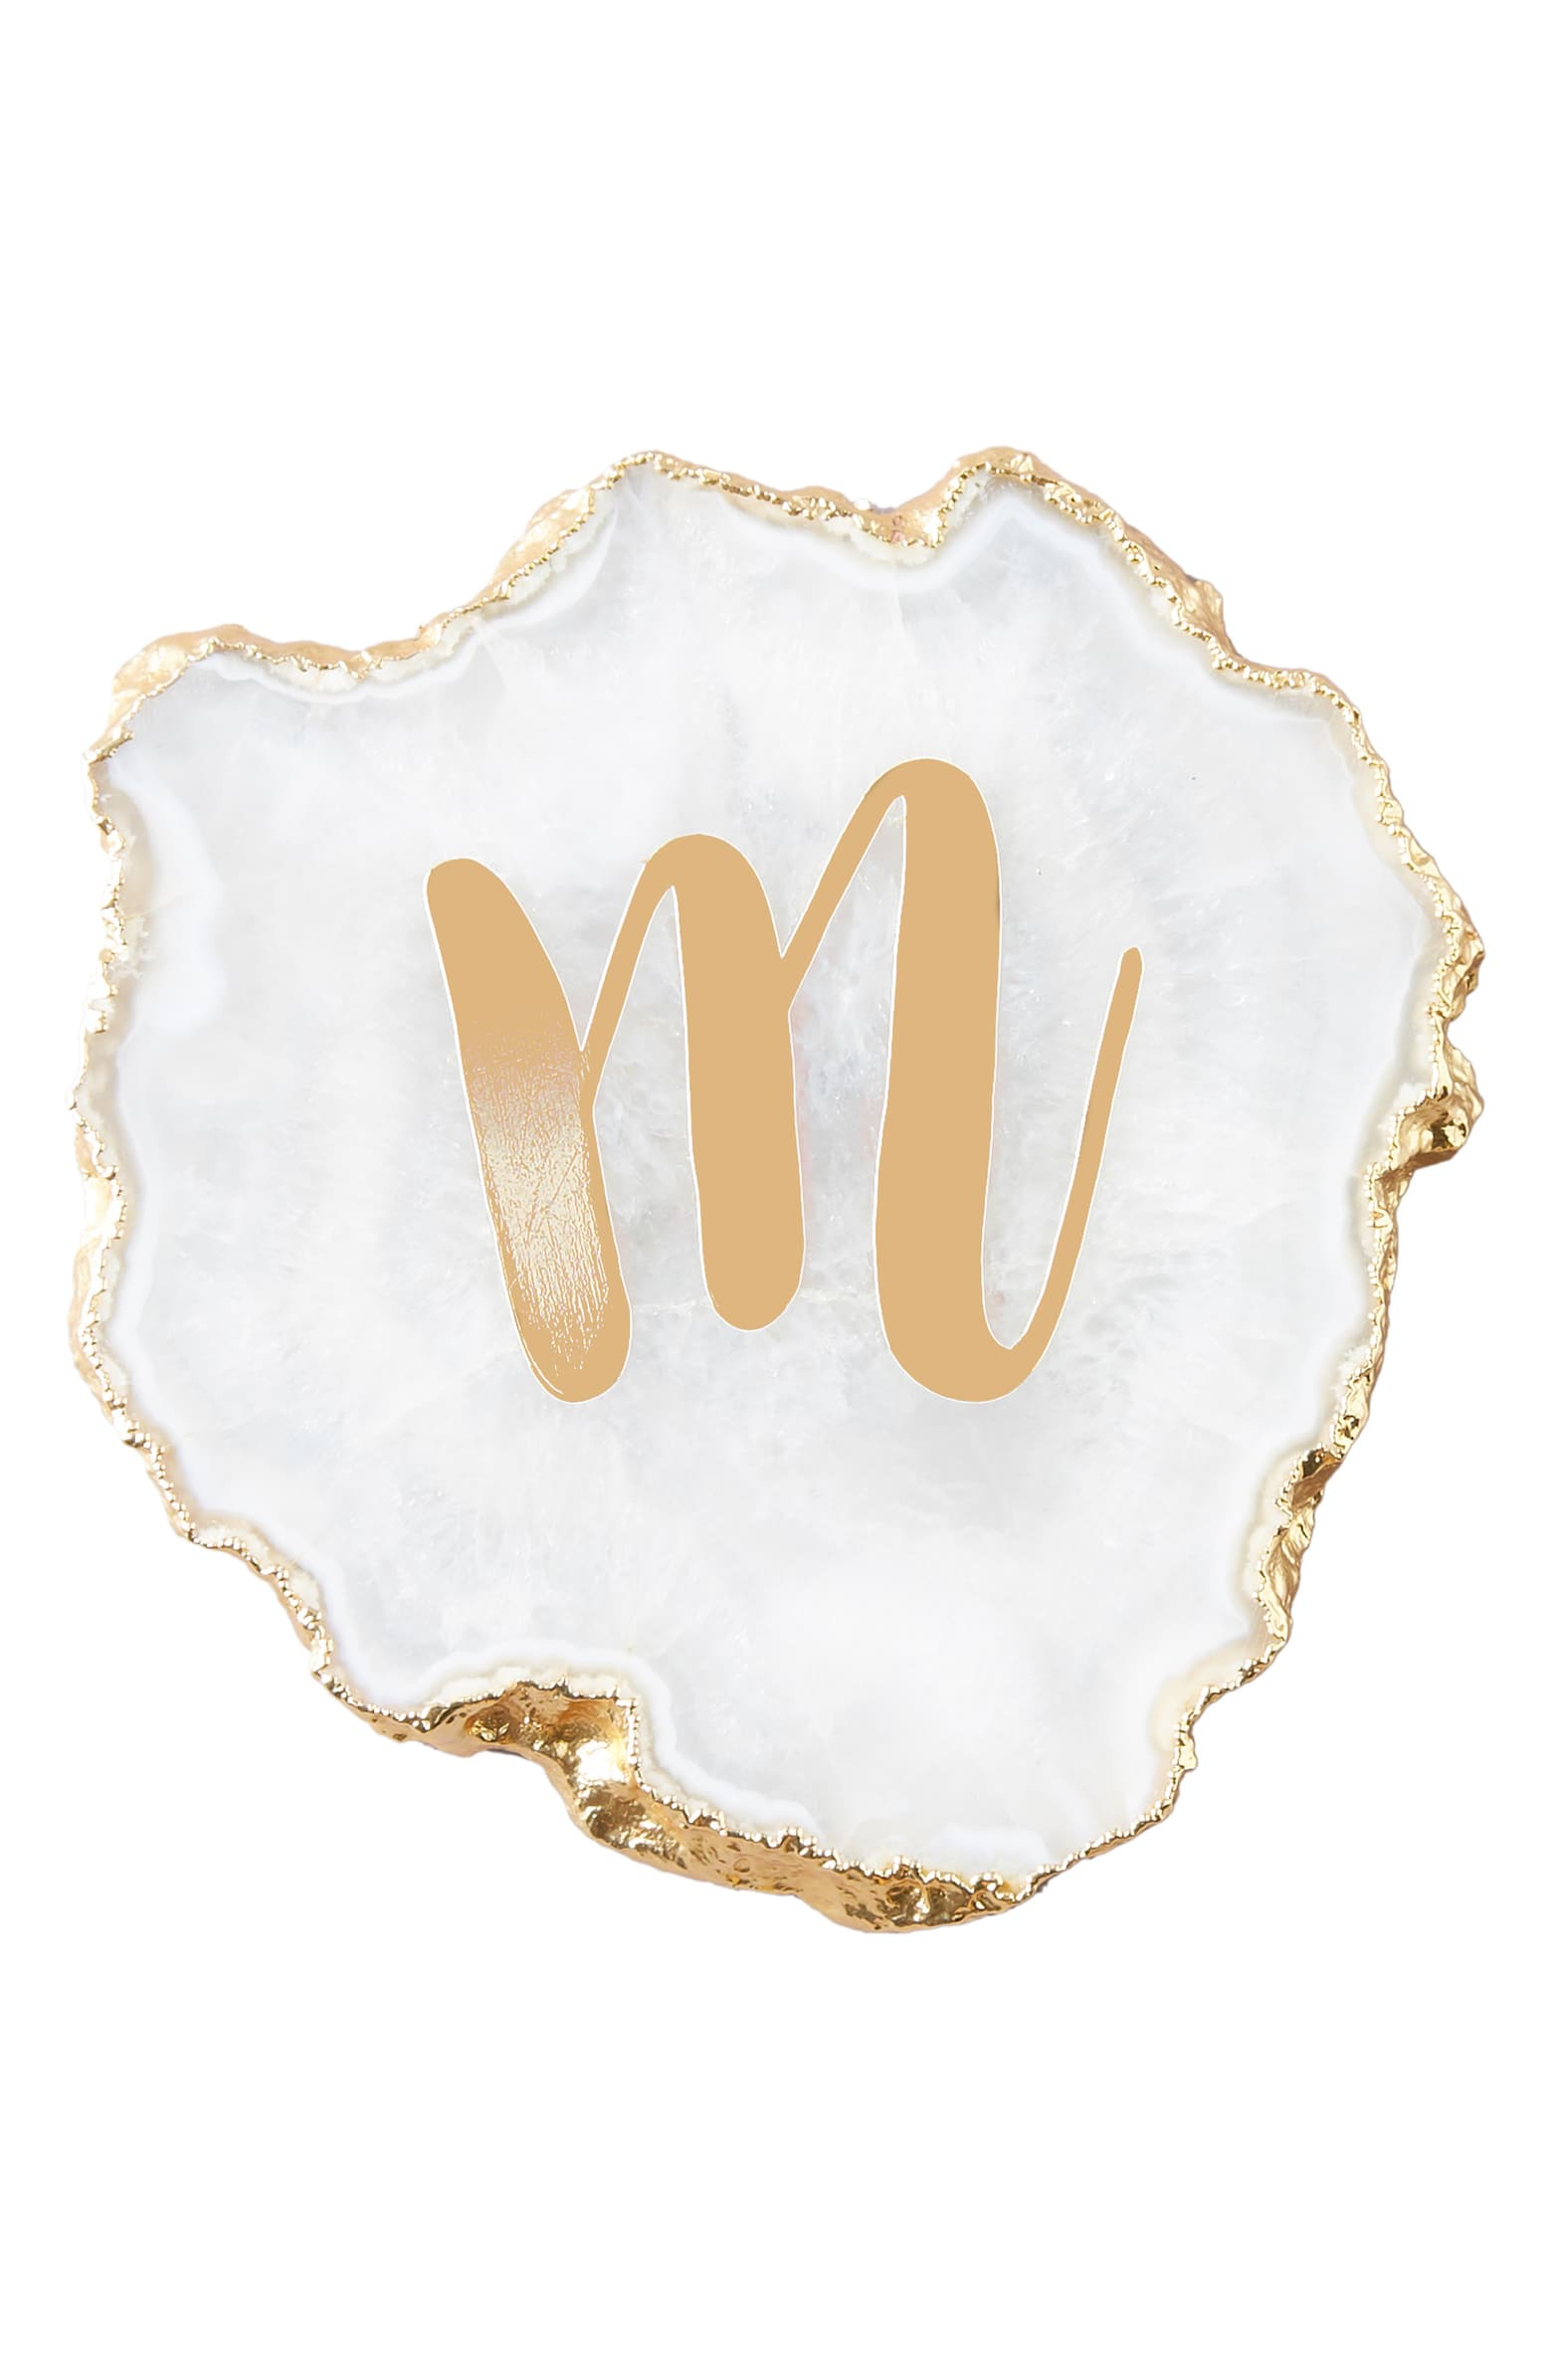 Anthropologie Monogram Coaster